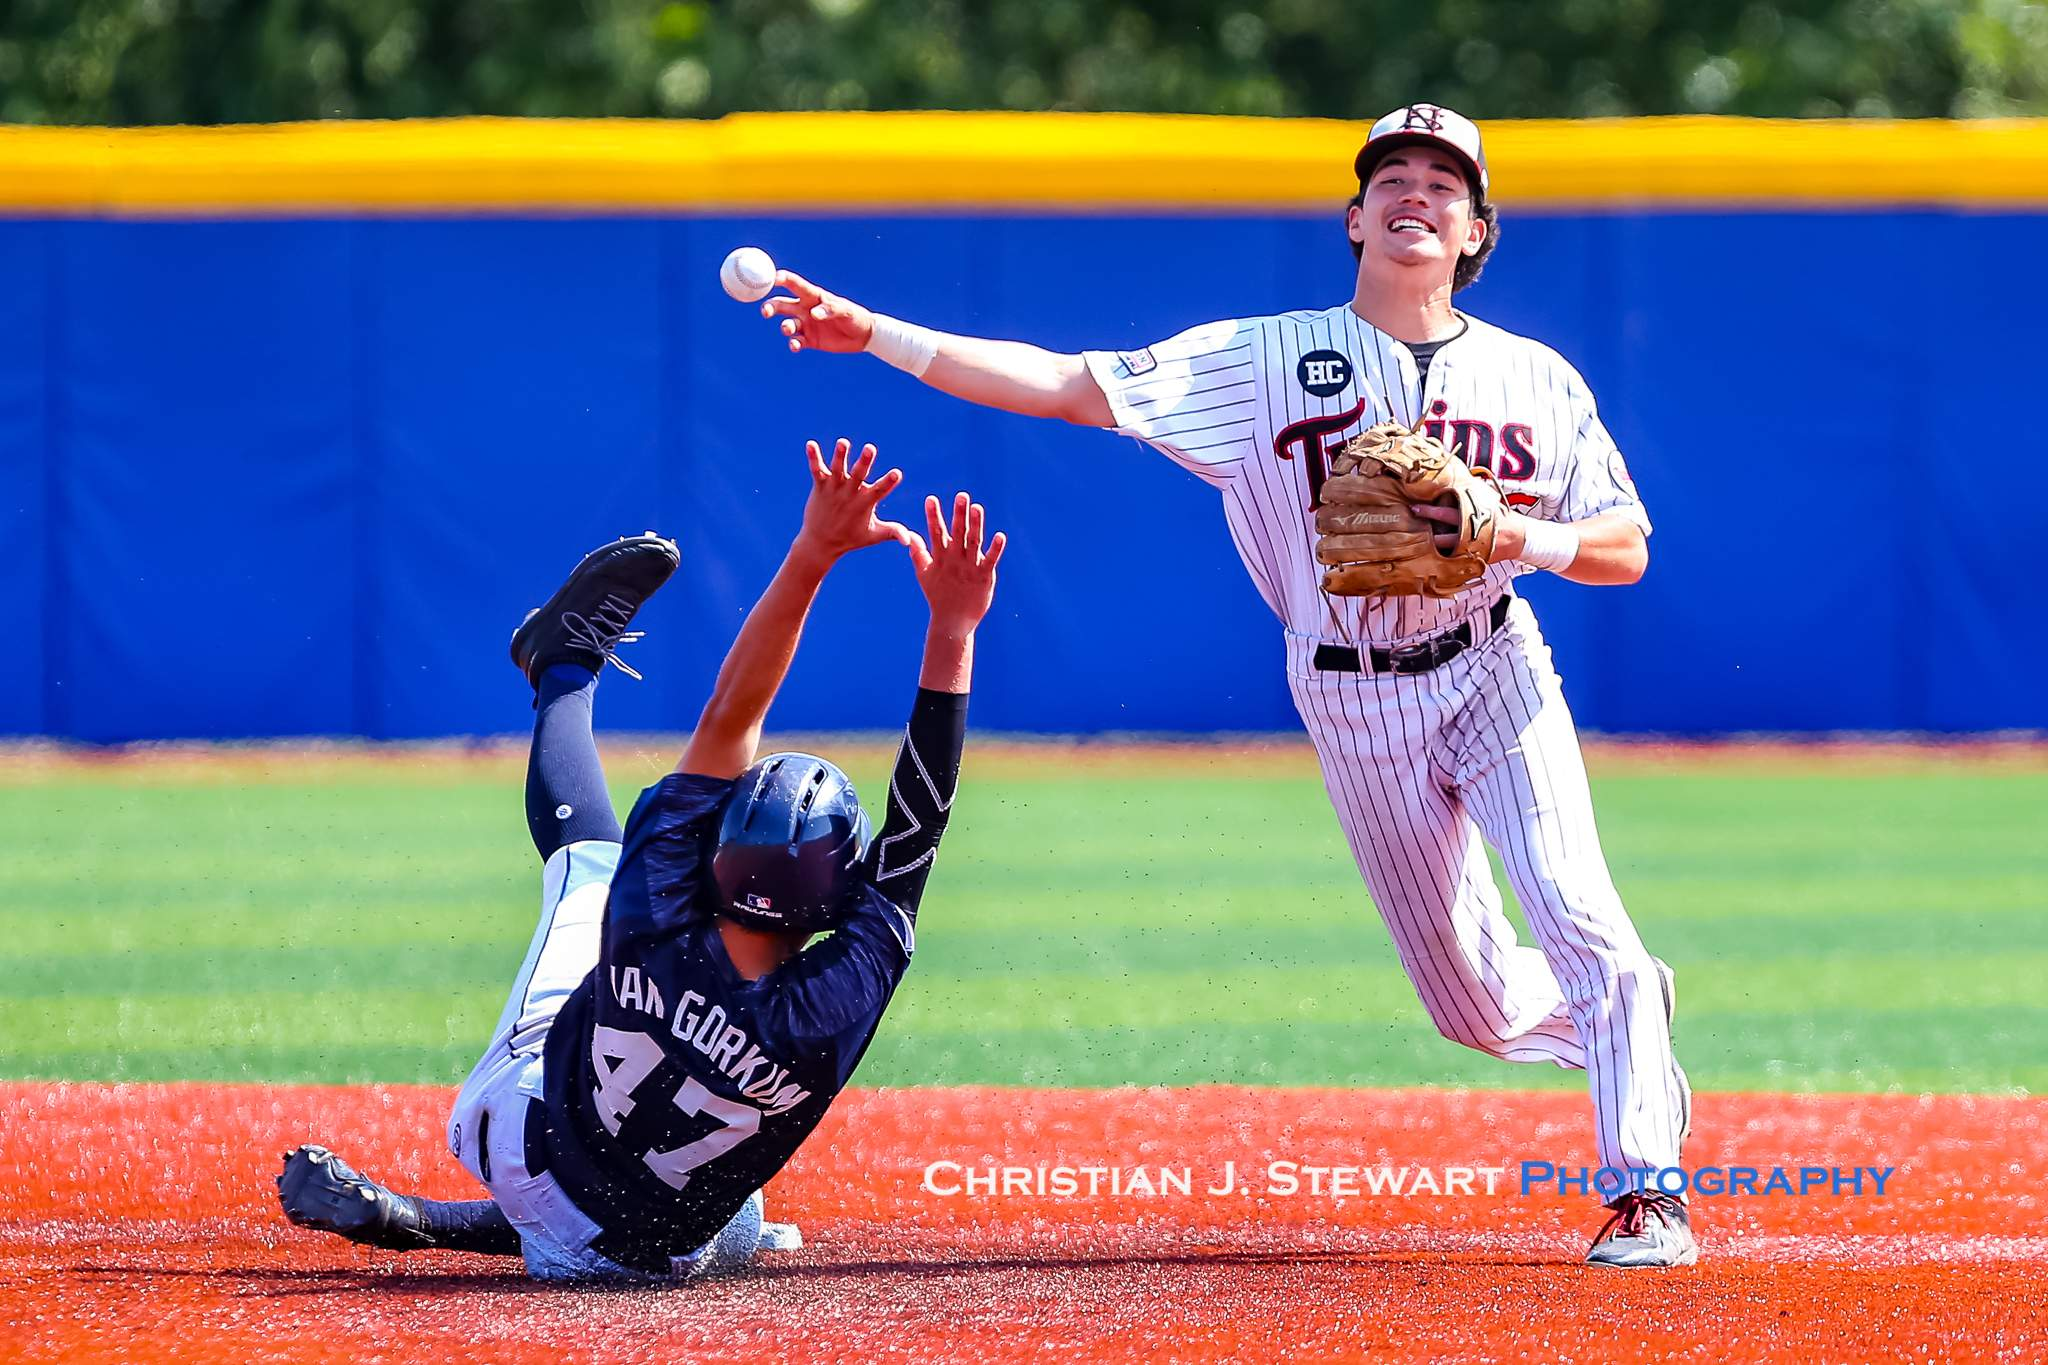 UBC's Luka Van Gorkum does his best to disrupt this double play turned by the Twin's Sam Van Snellenberg (Photo: Christian J. Stewart)